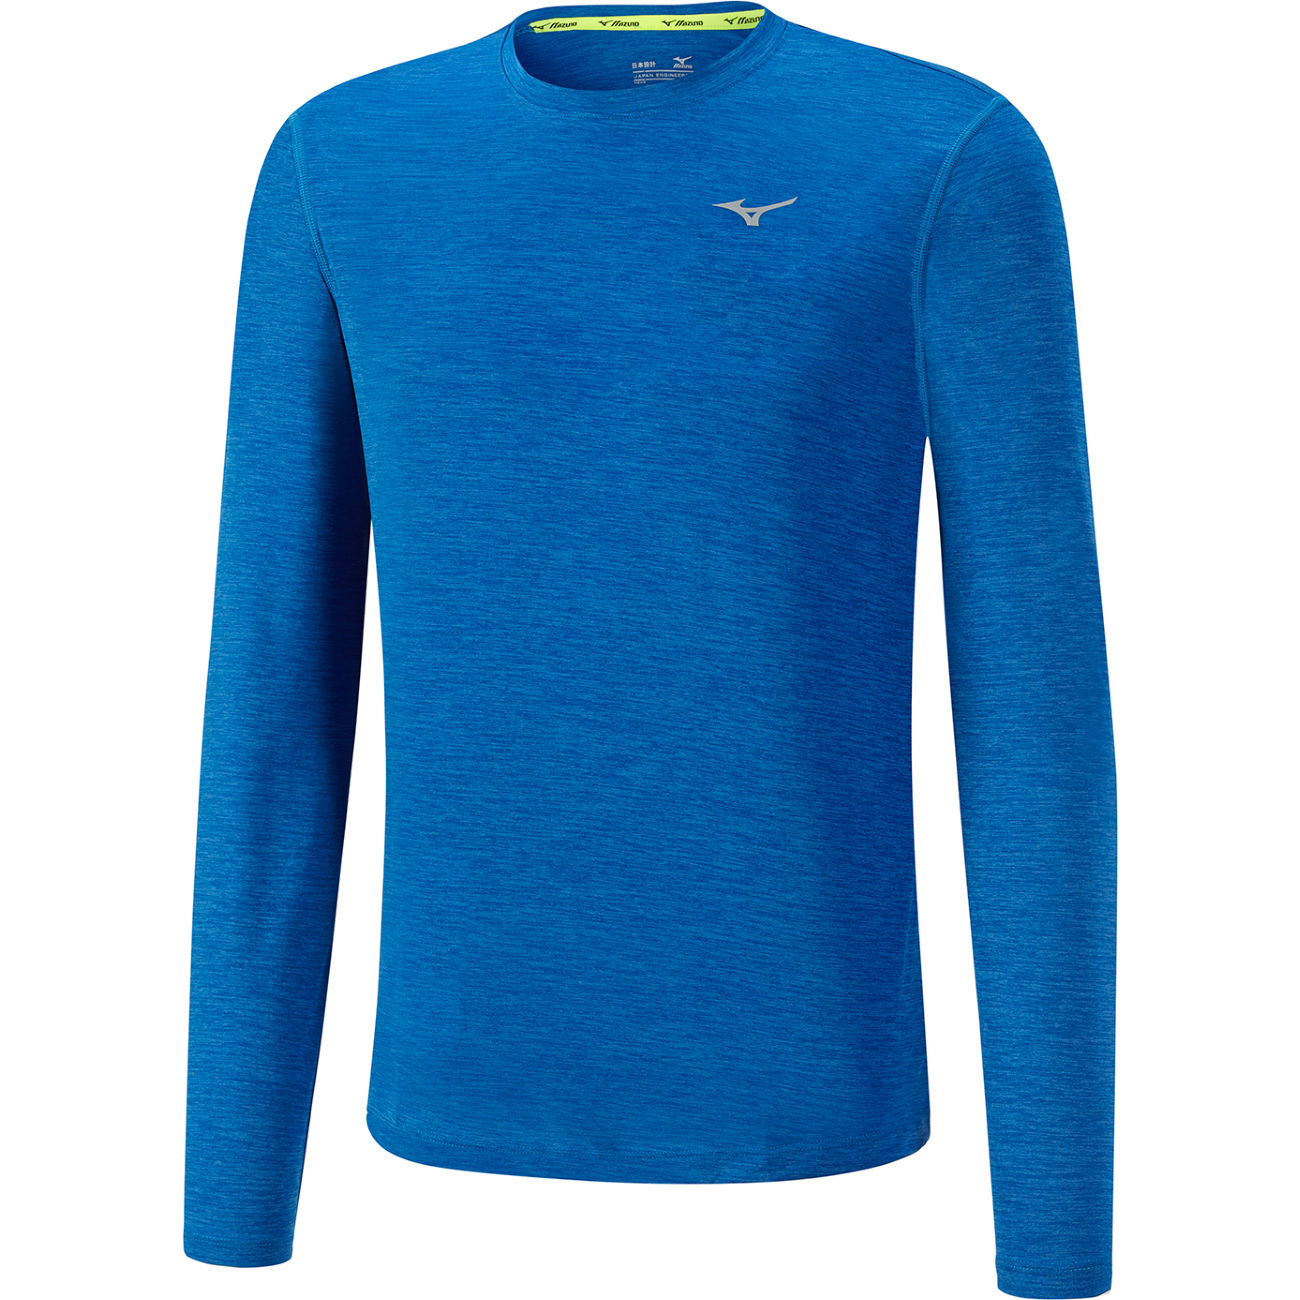 wiggle mizuno impulse core ls tee long sleeve running tops. Black Bedroom Furniture Sets. Home Design Ideas